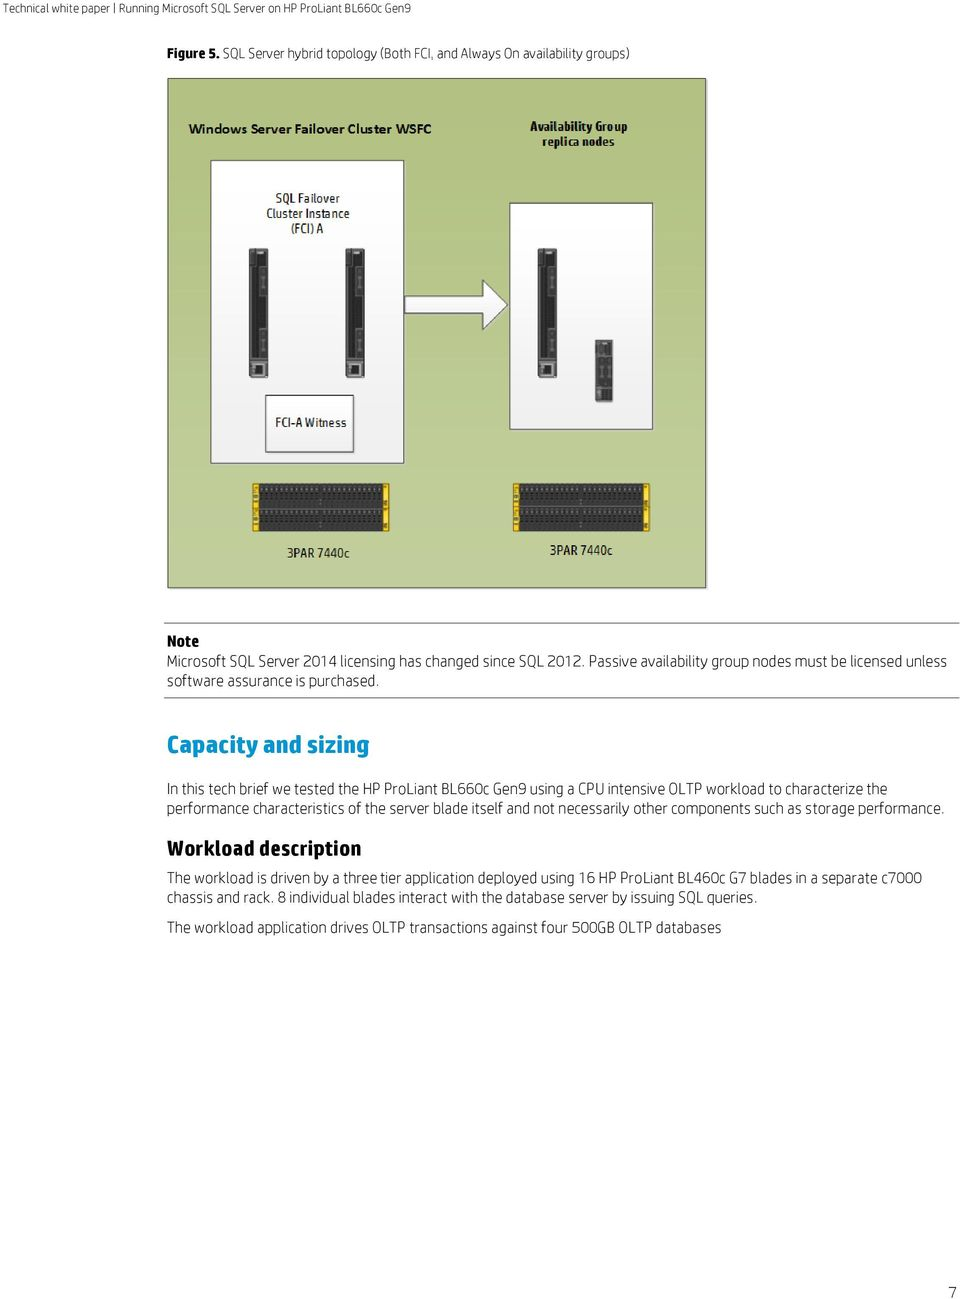 Capacity and sizing In this tech brief we tested the HP ProLiant BL660c Gen9 using a CPU intensive OLTP workload to characterize the performance characteristics of the server blade itself and not